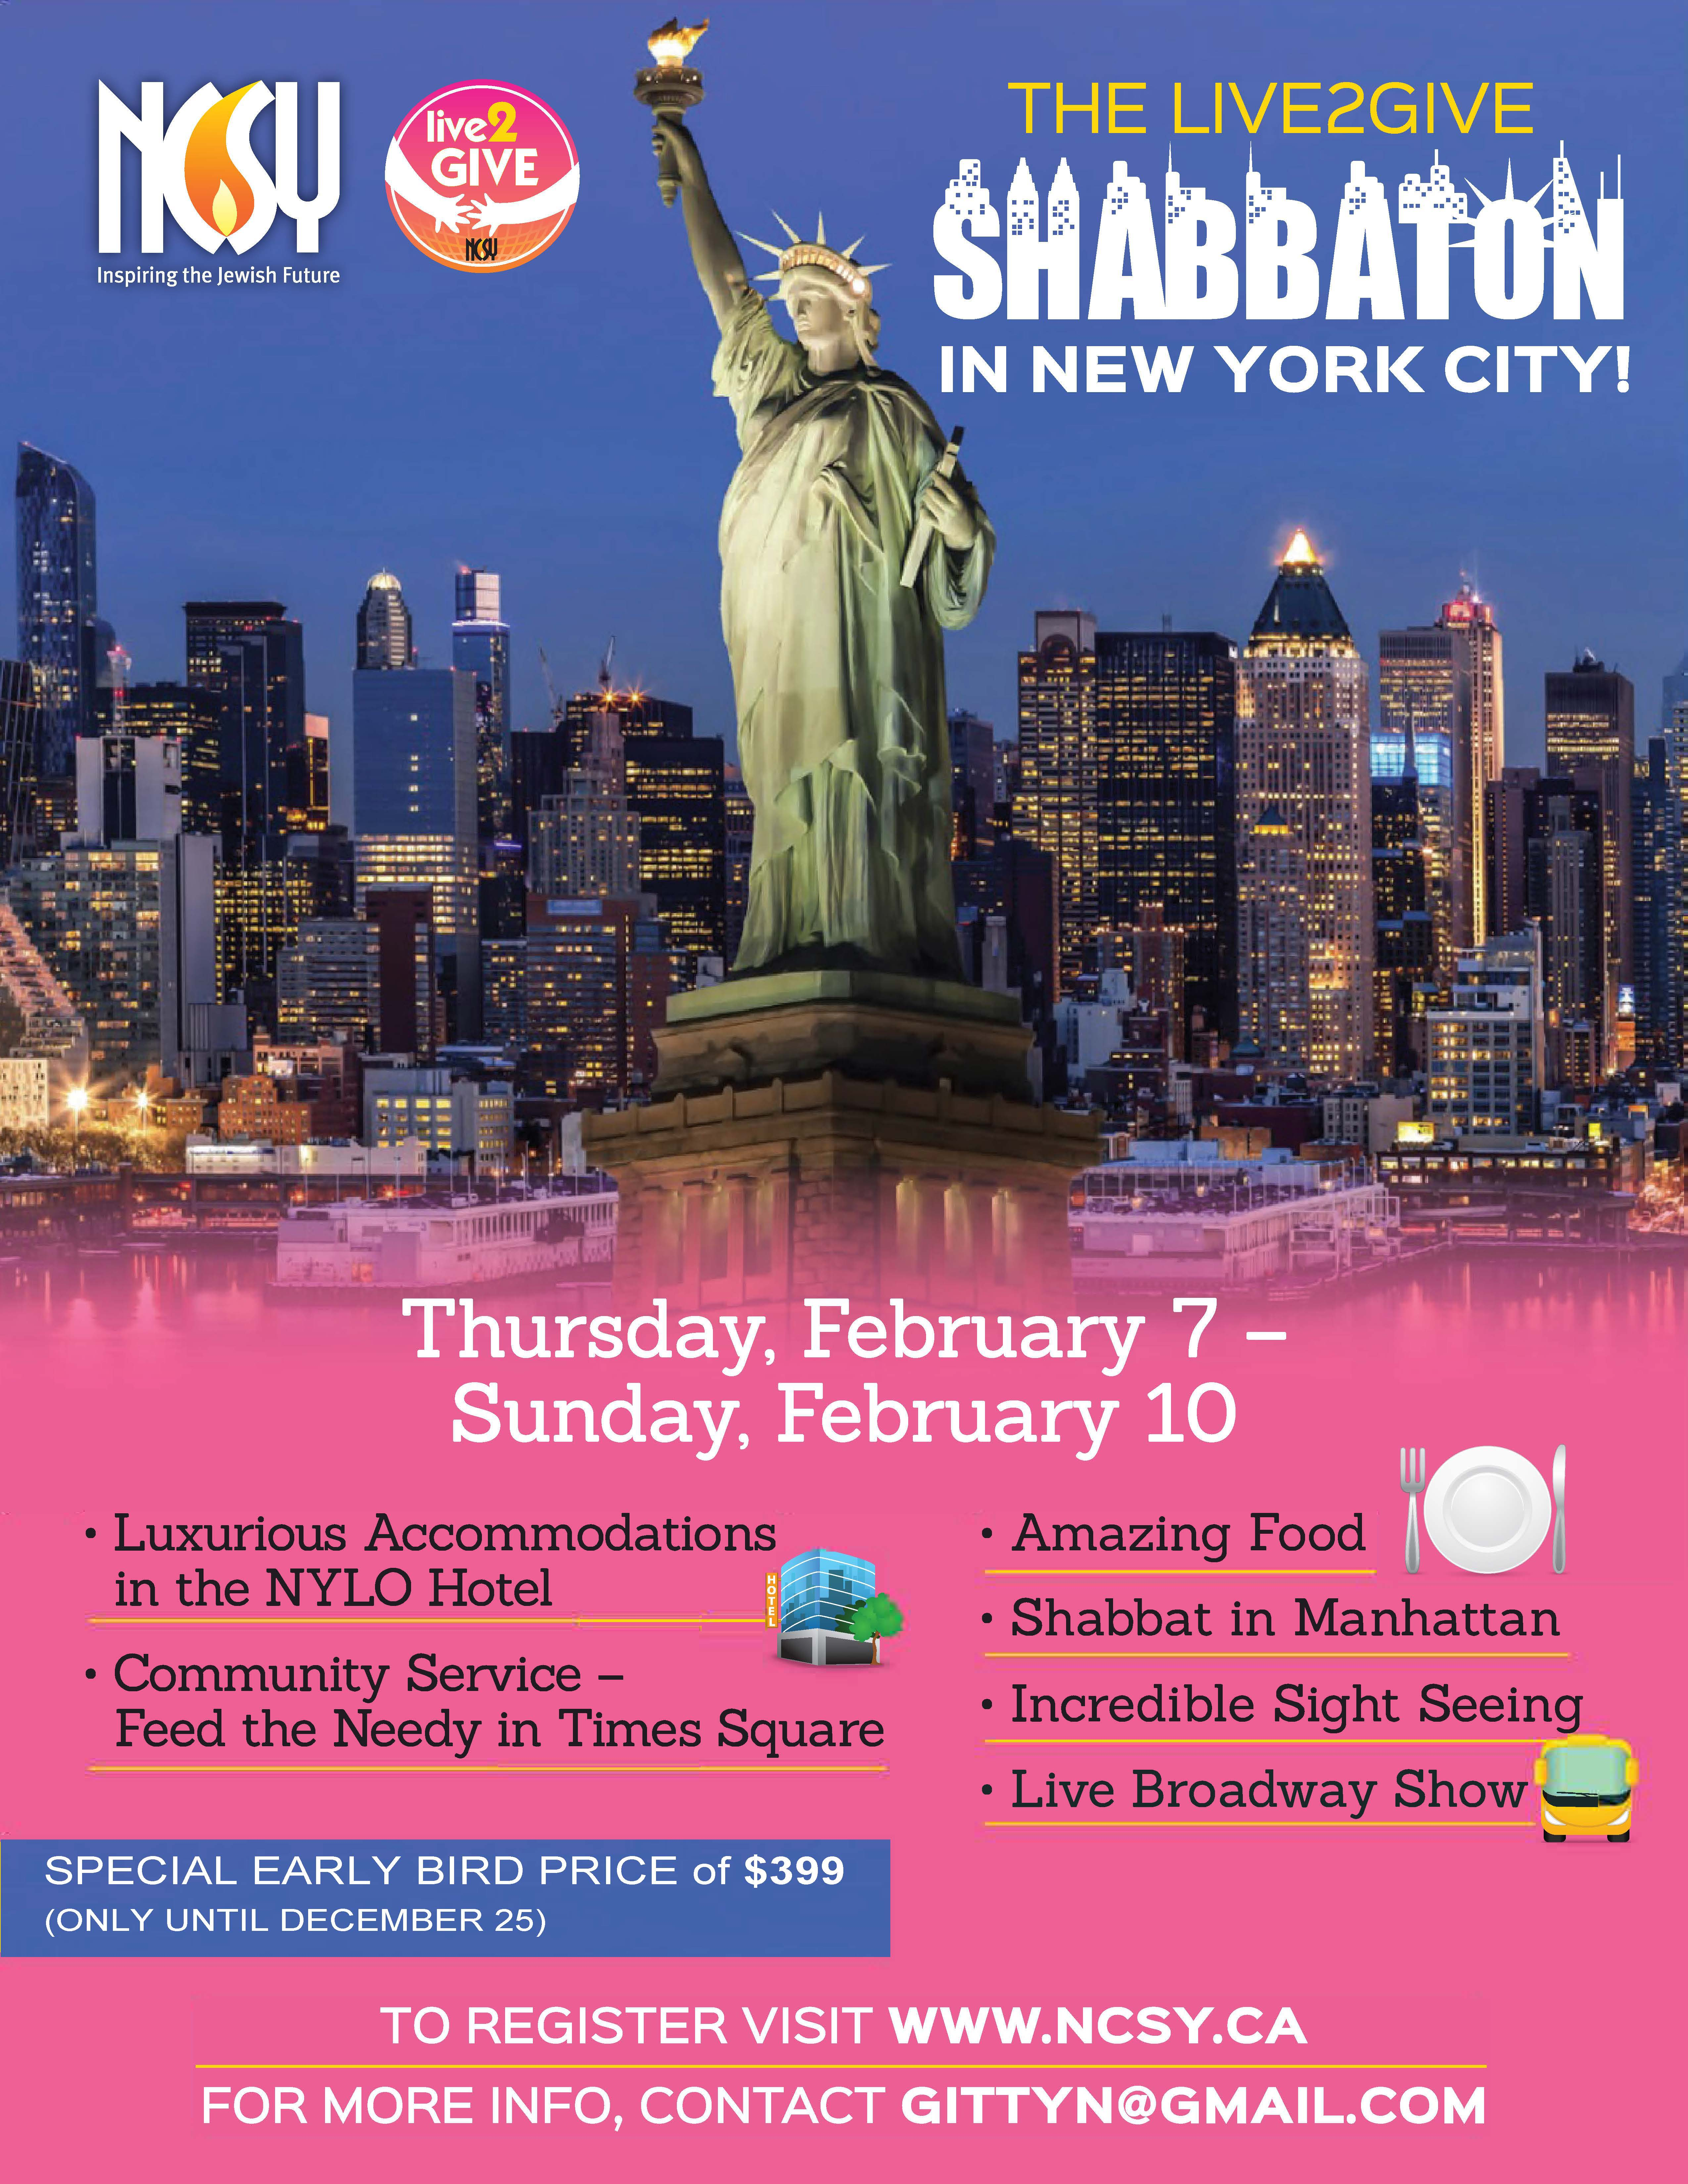 All Girls Live2Give Shabbaton in NYC! – Thu Feb 7th 11:00PM